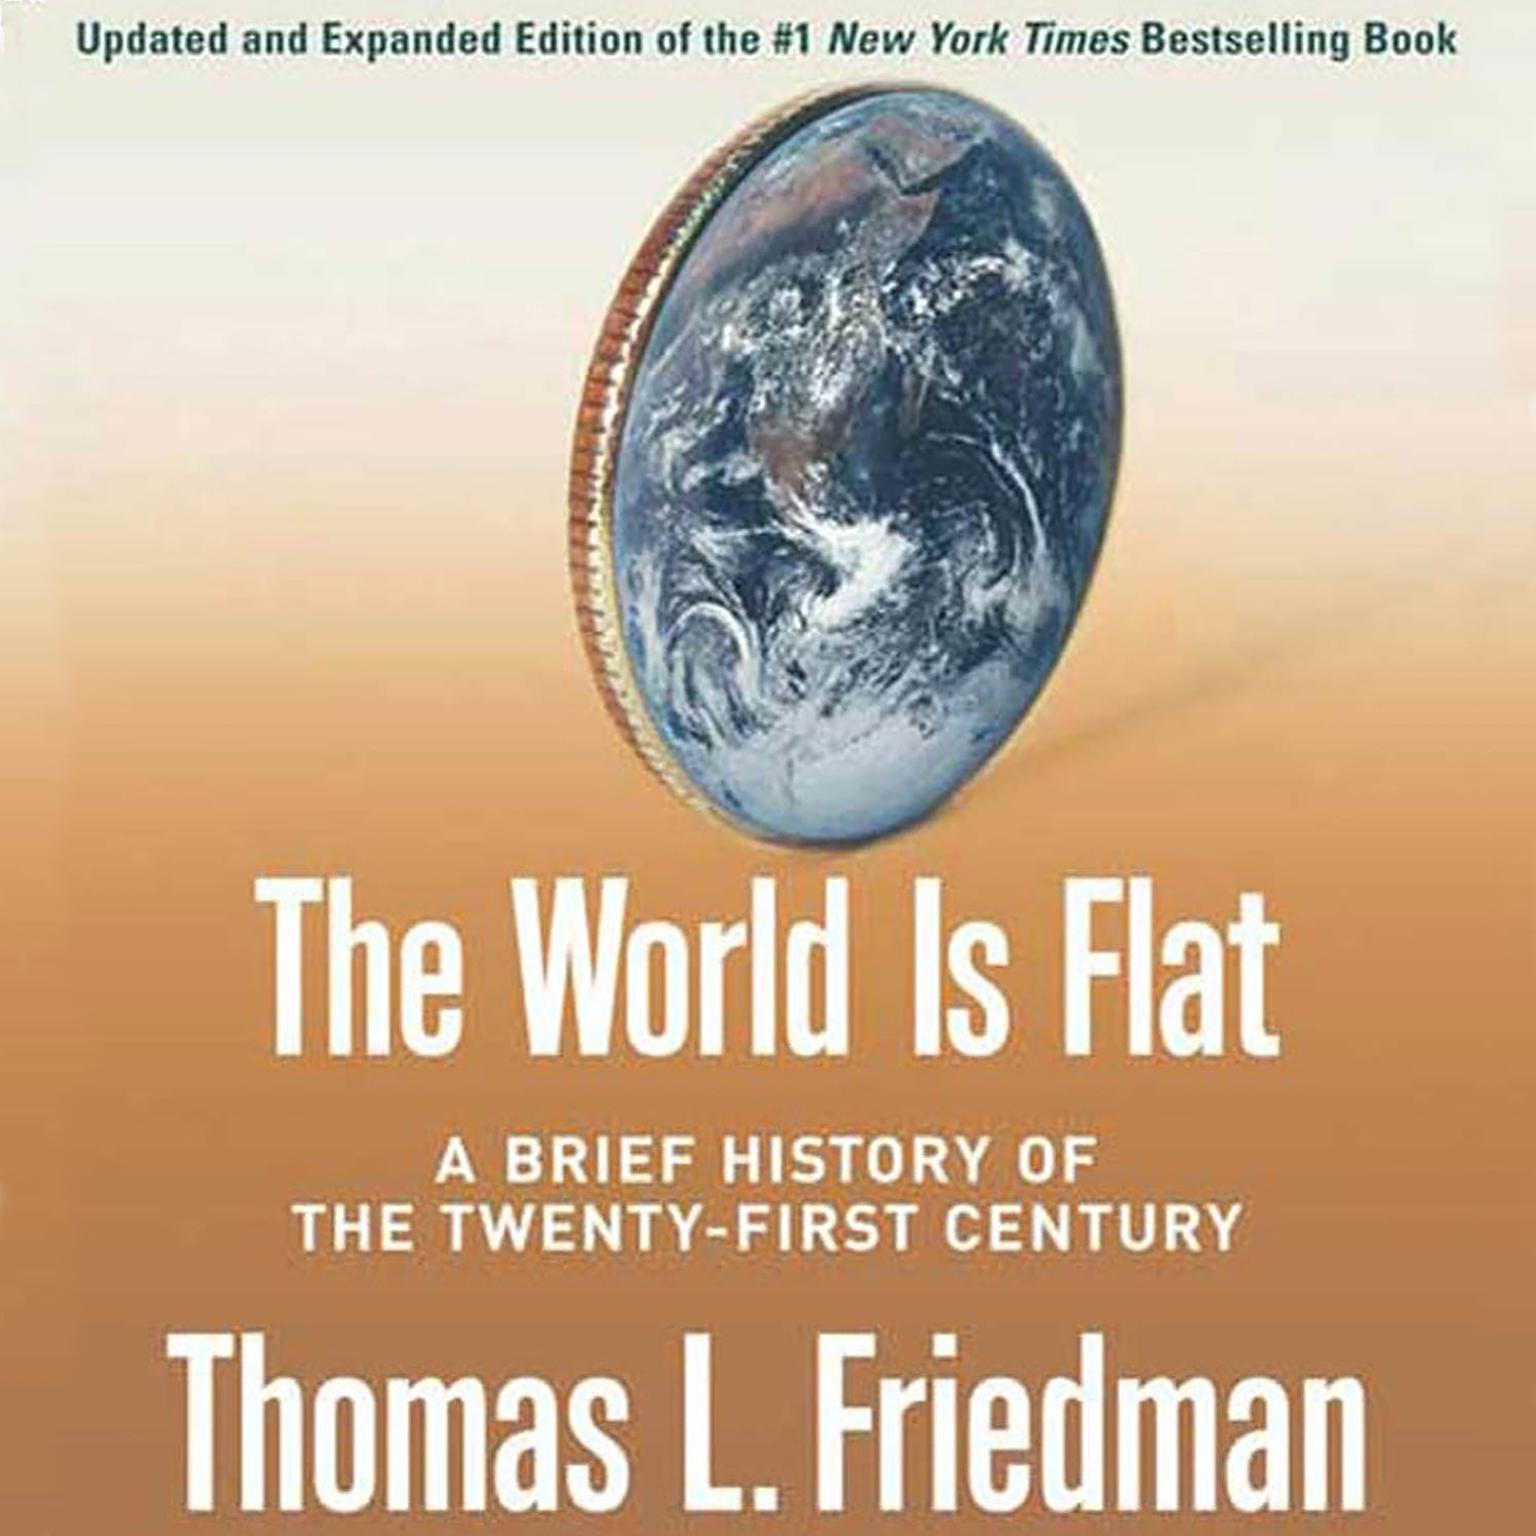 Download the world is flat updated and expanded audiobook by extended audio sample the world is flat updated and expanded a brief history of the twenty sciox Choice Image